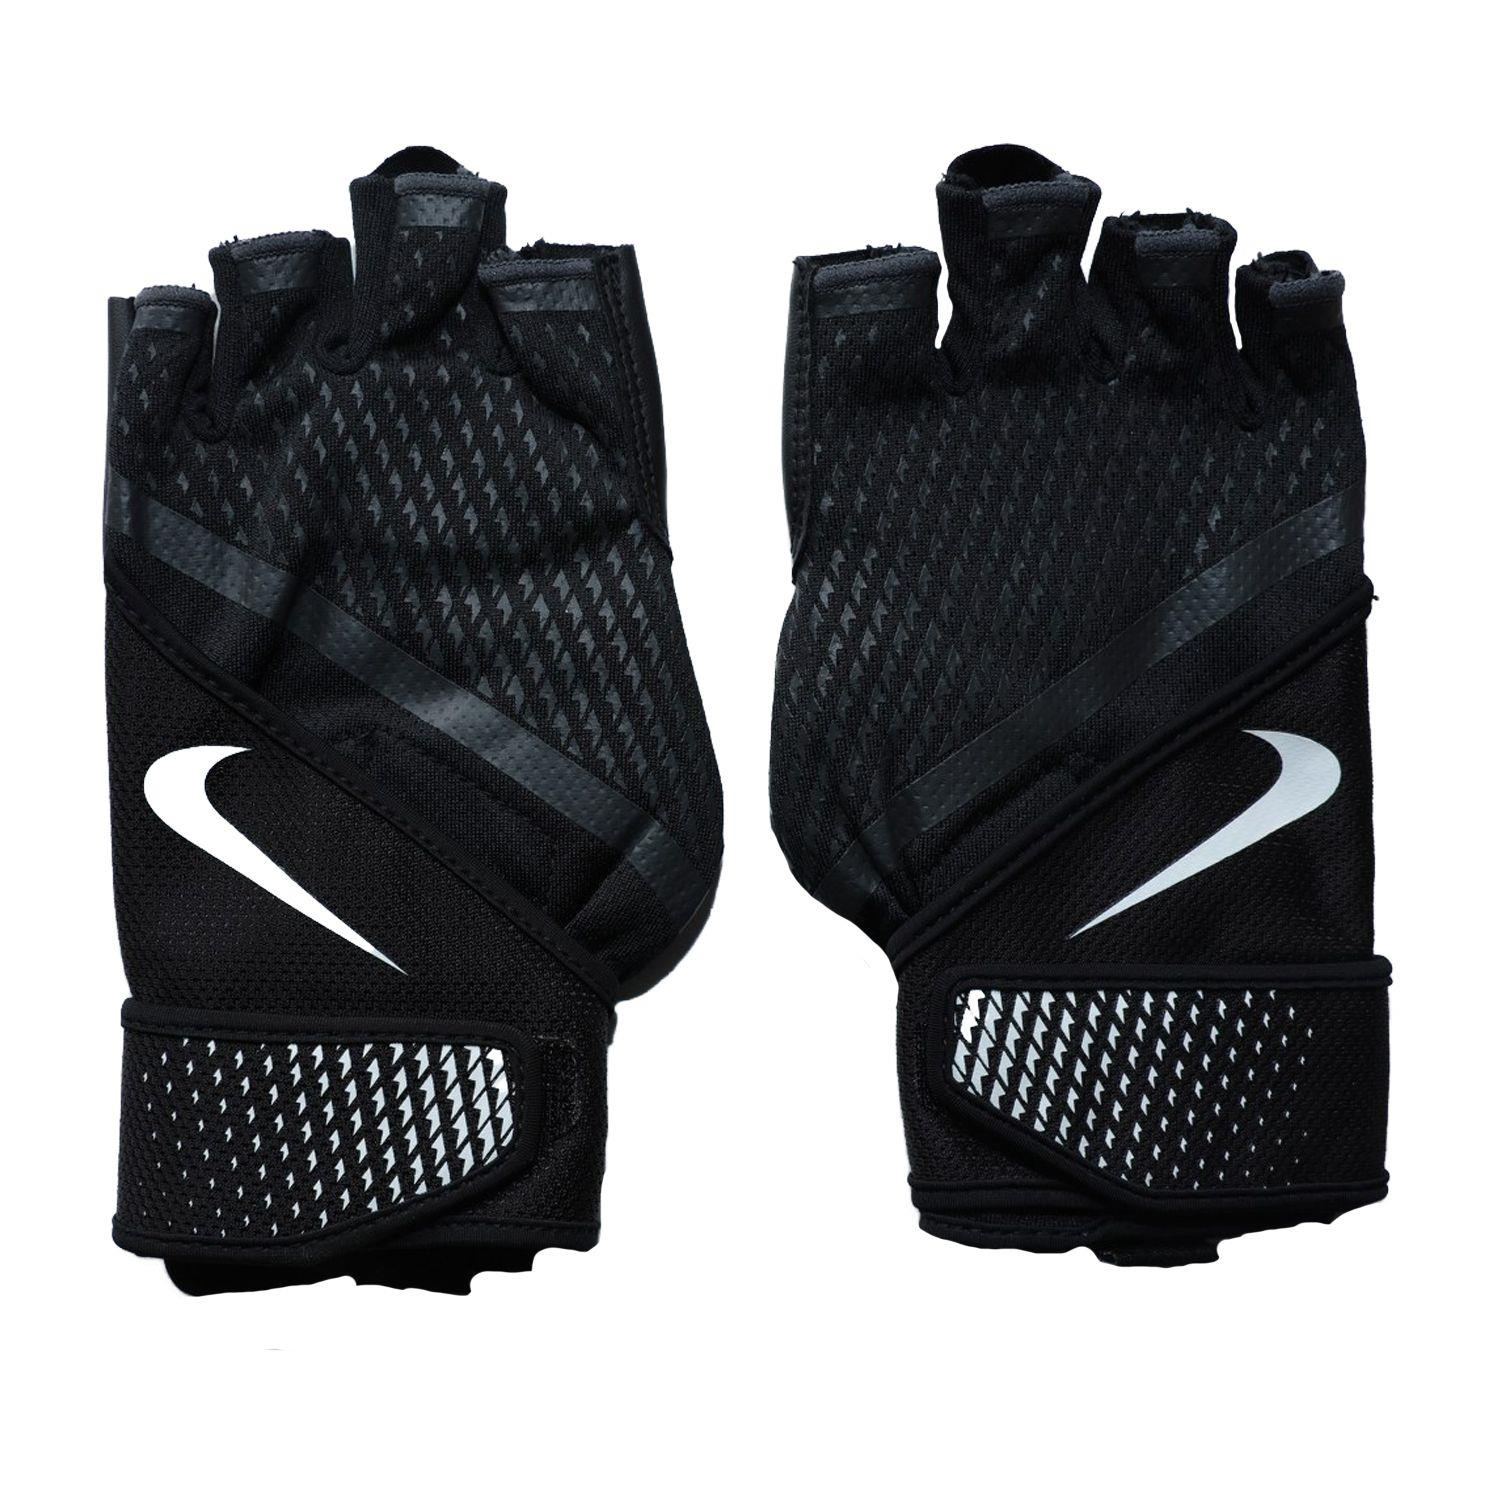 Nike N.LG.B4.031.MD MEN'S DESTROYER TRAINING GLOVES SPOR GYM FITNESS AĞIRLIK ELDİVENİ M BEDEN